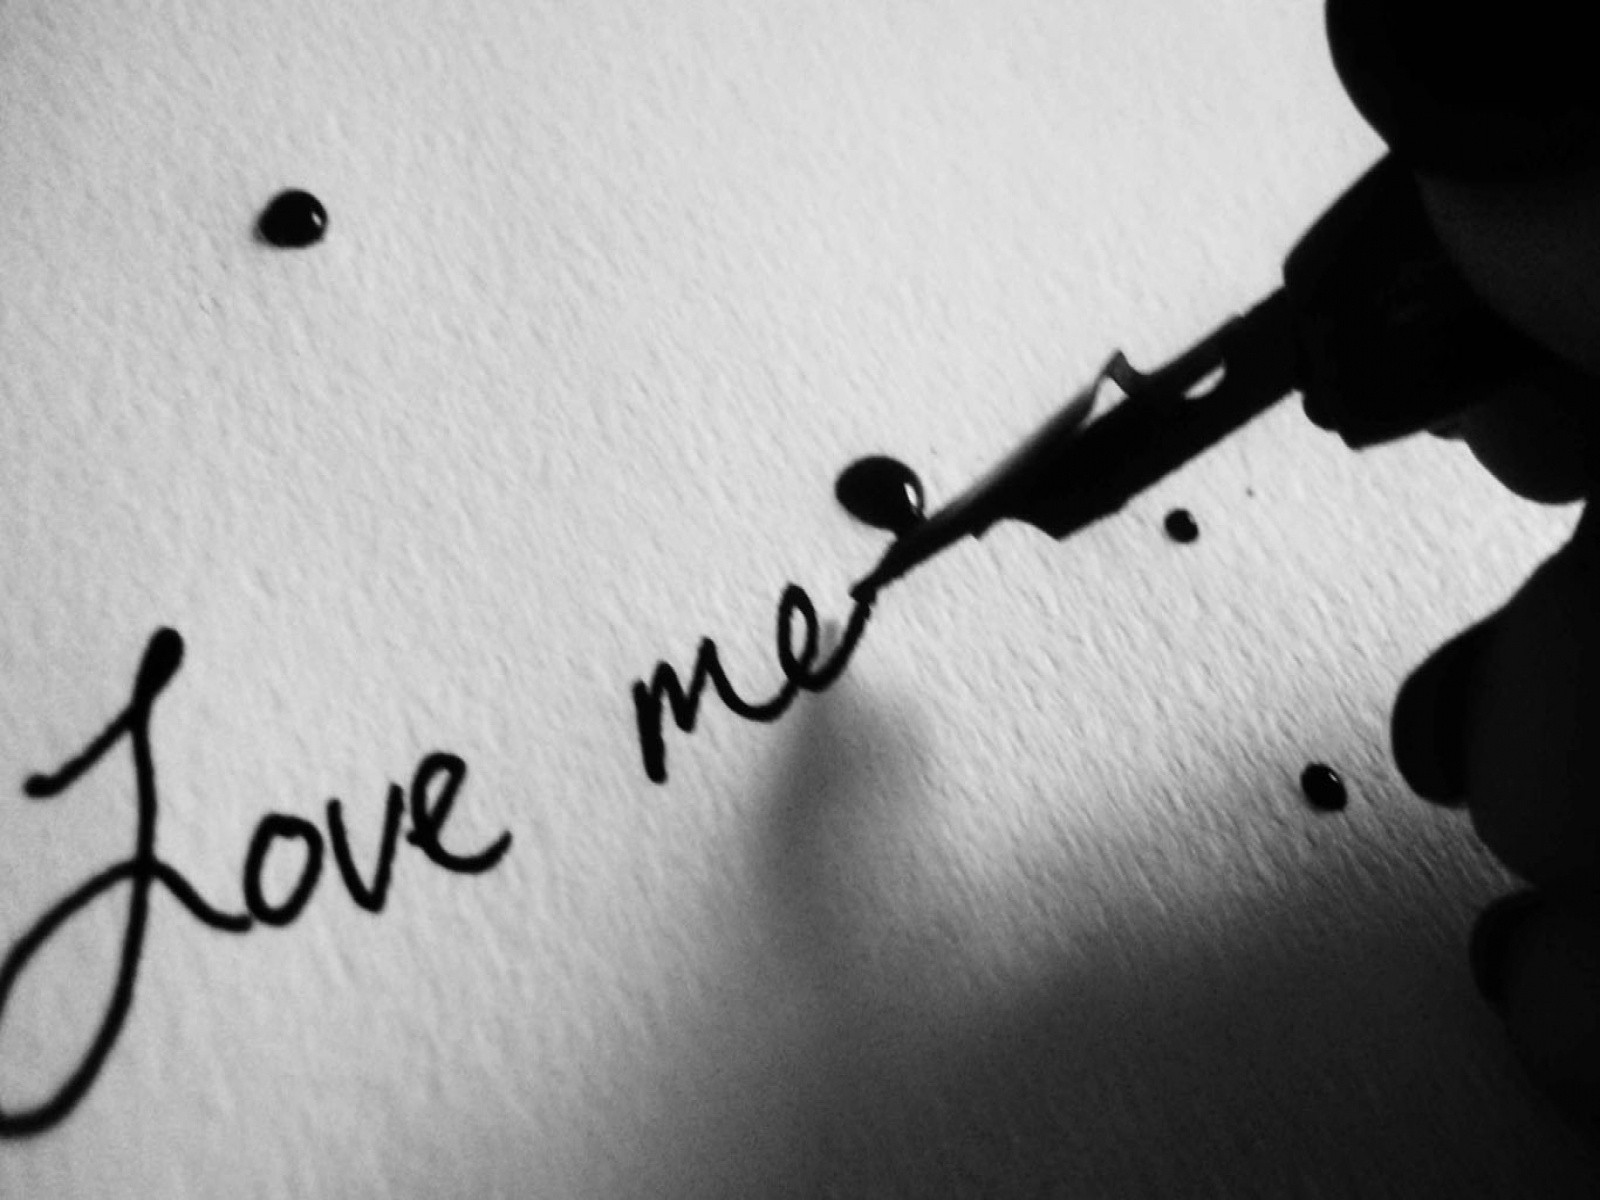 Love Me Quotes Wallpaper : 1600x1200 Love Me desktop Pc and Mac wallpaper